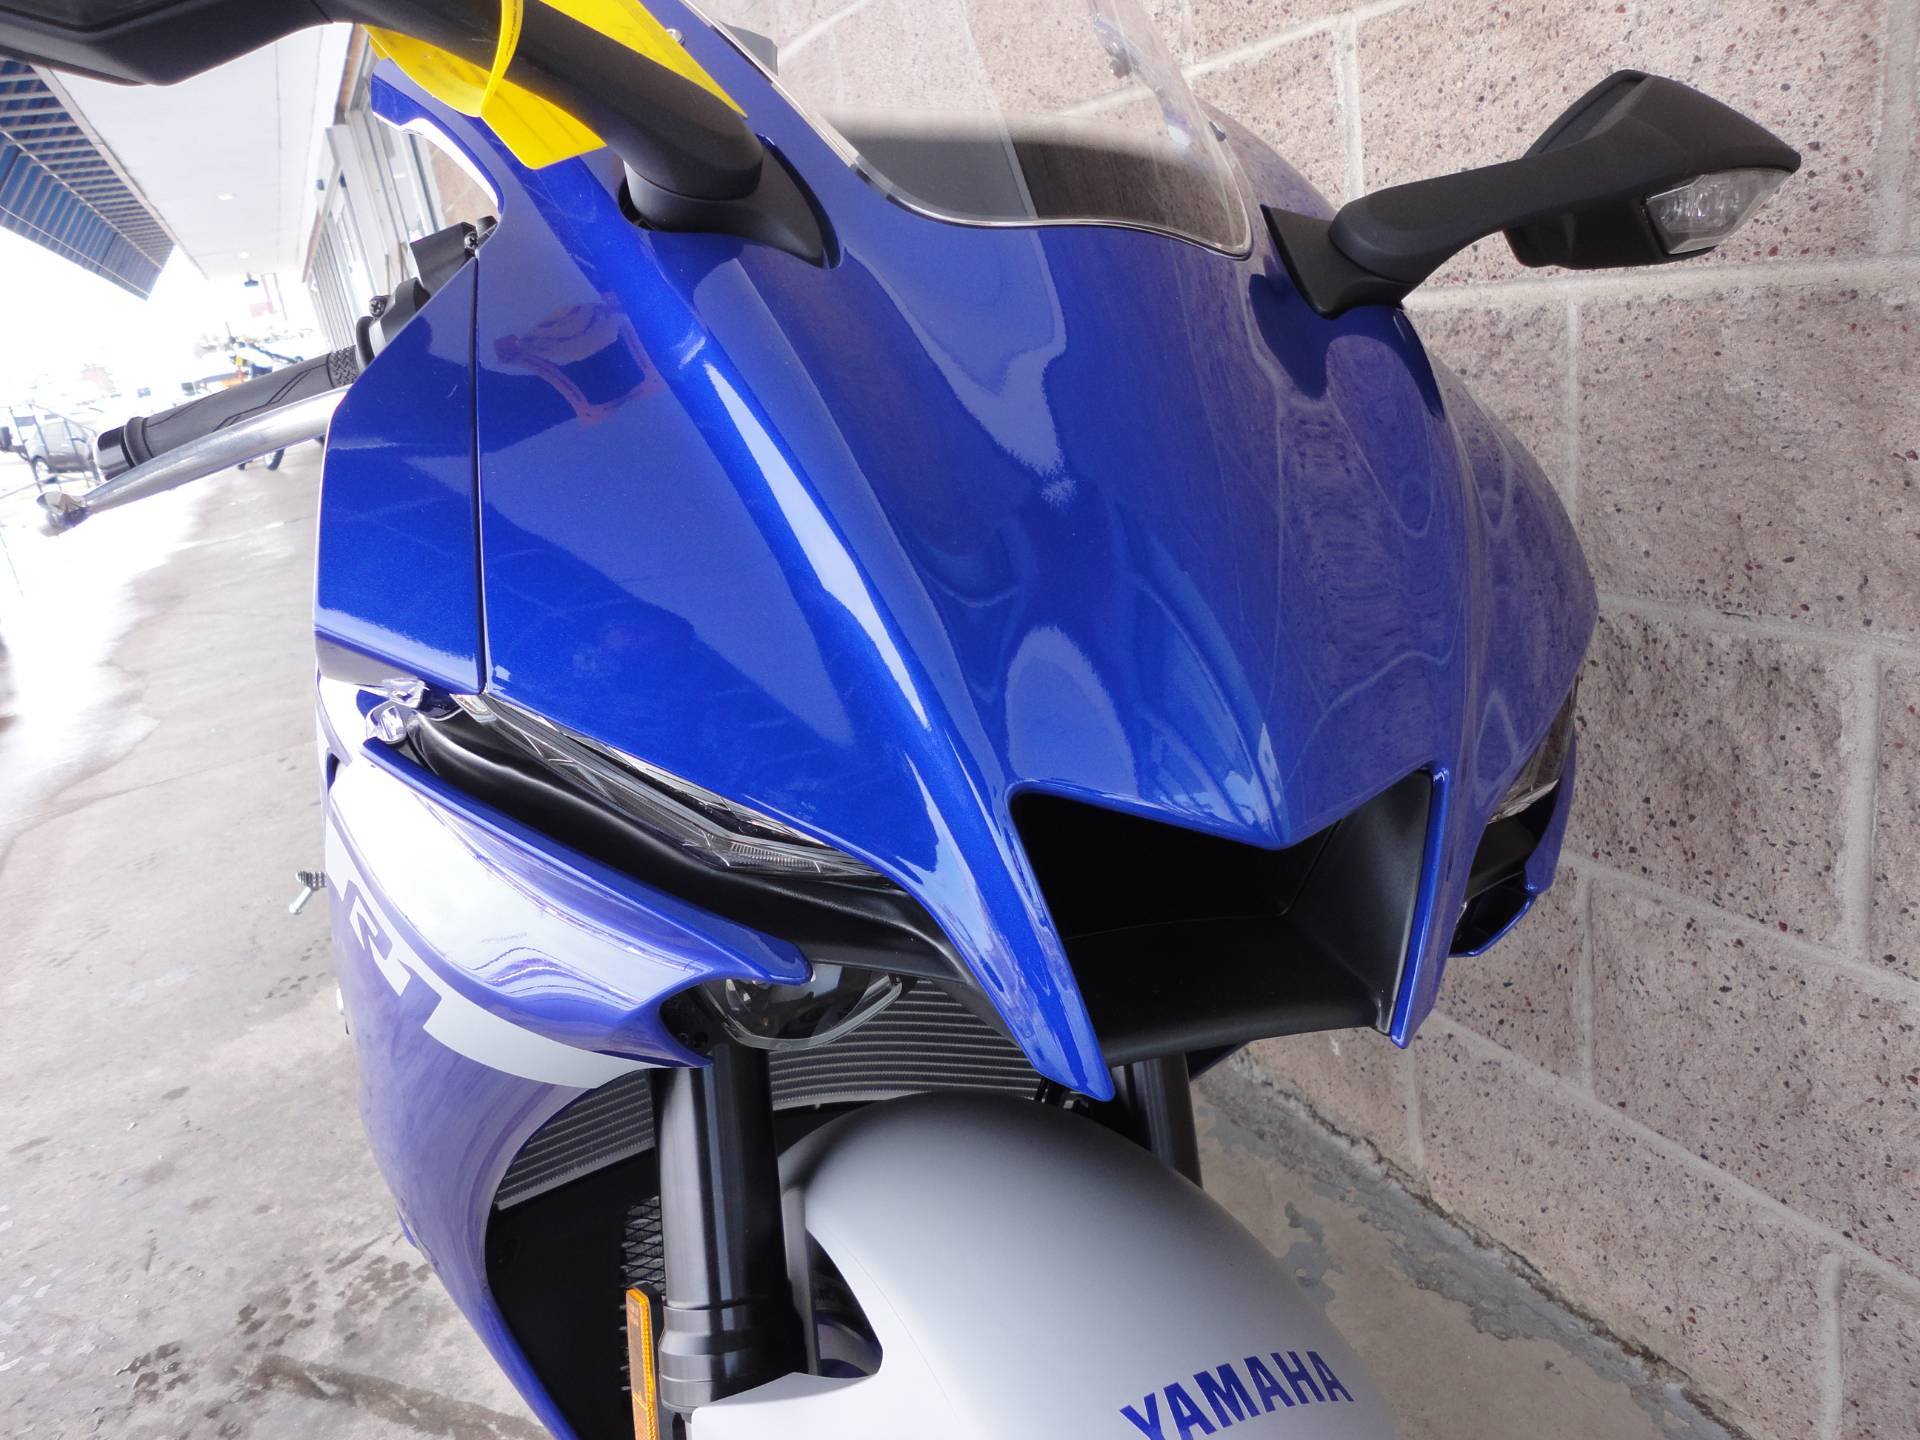 2020 Yamaha YZF-R1 in Denver, Colorado - Photo 13